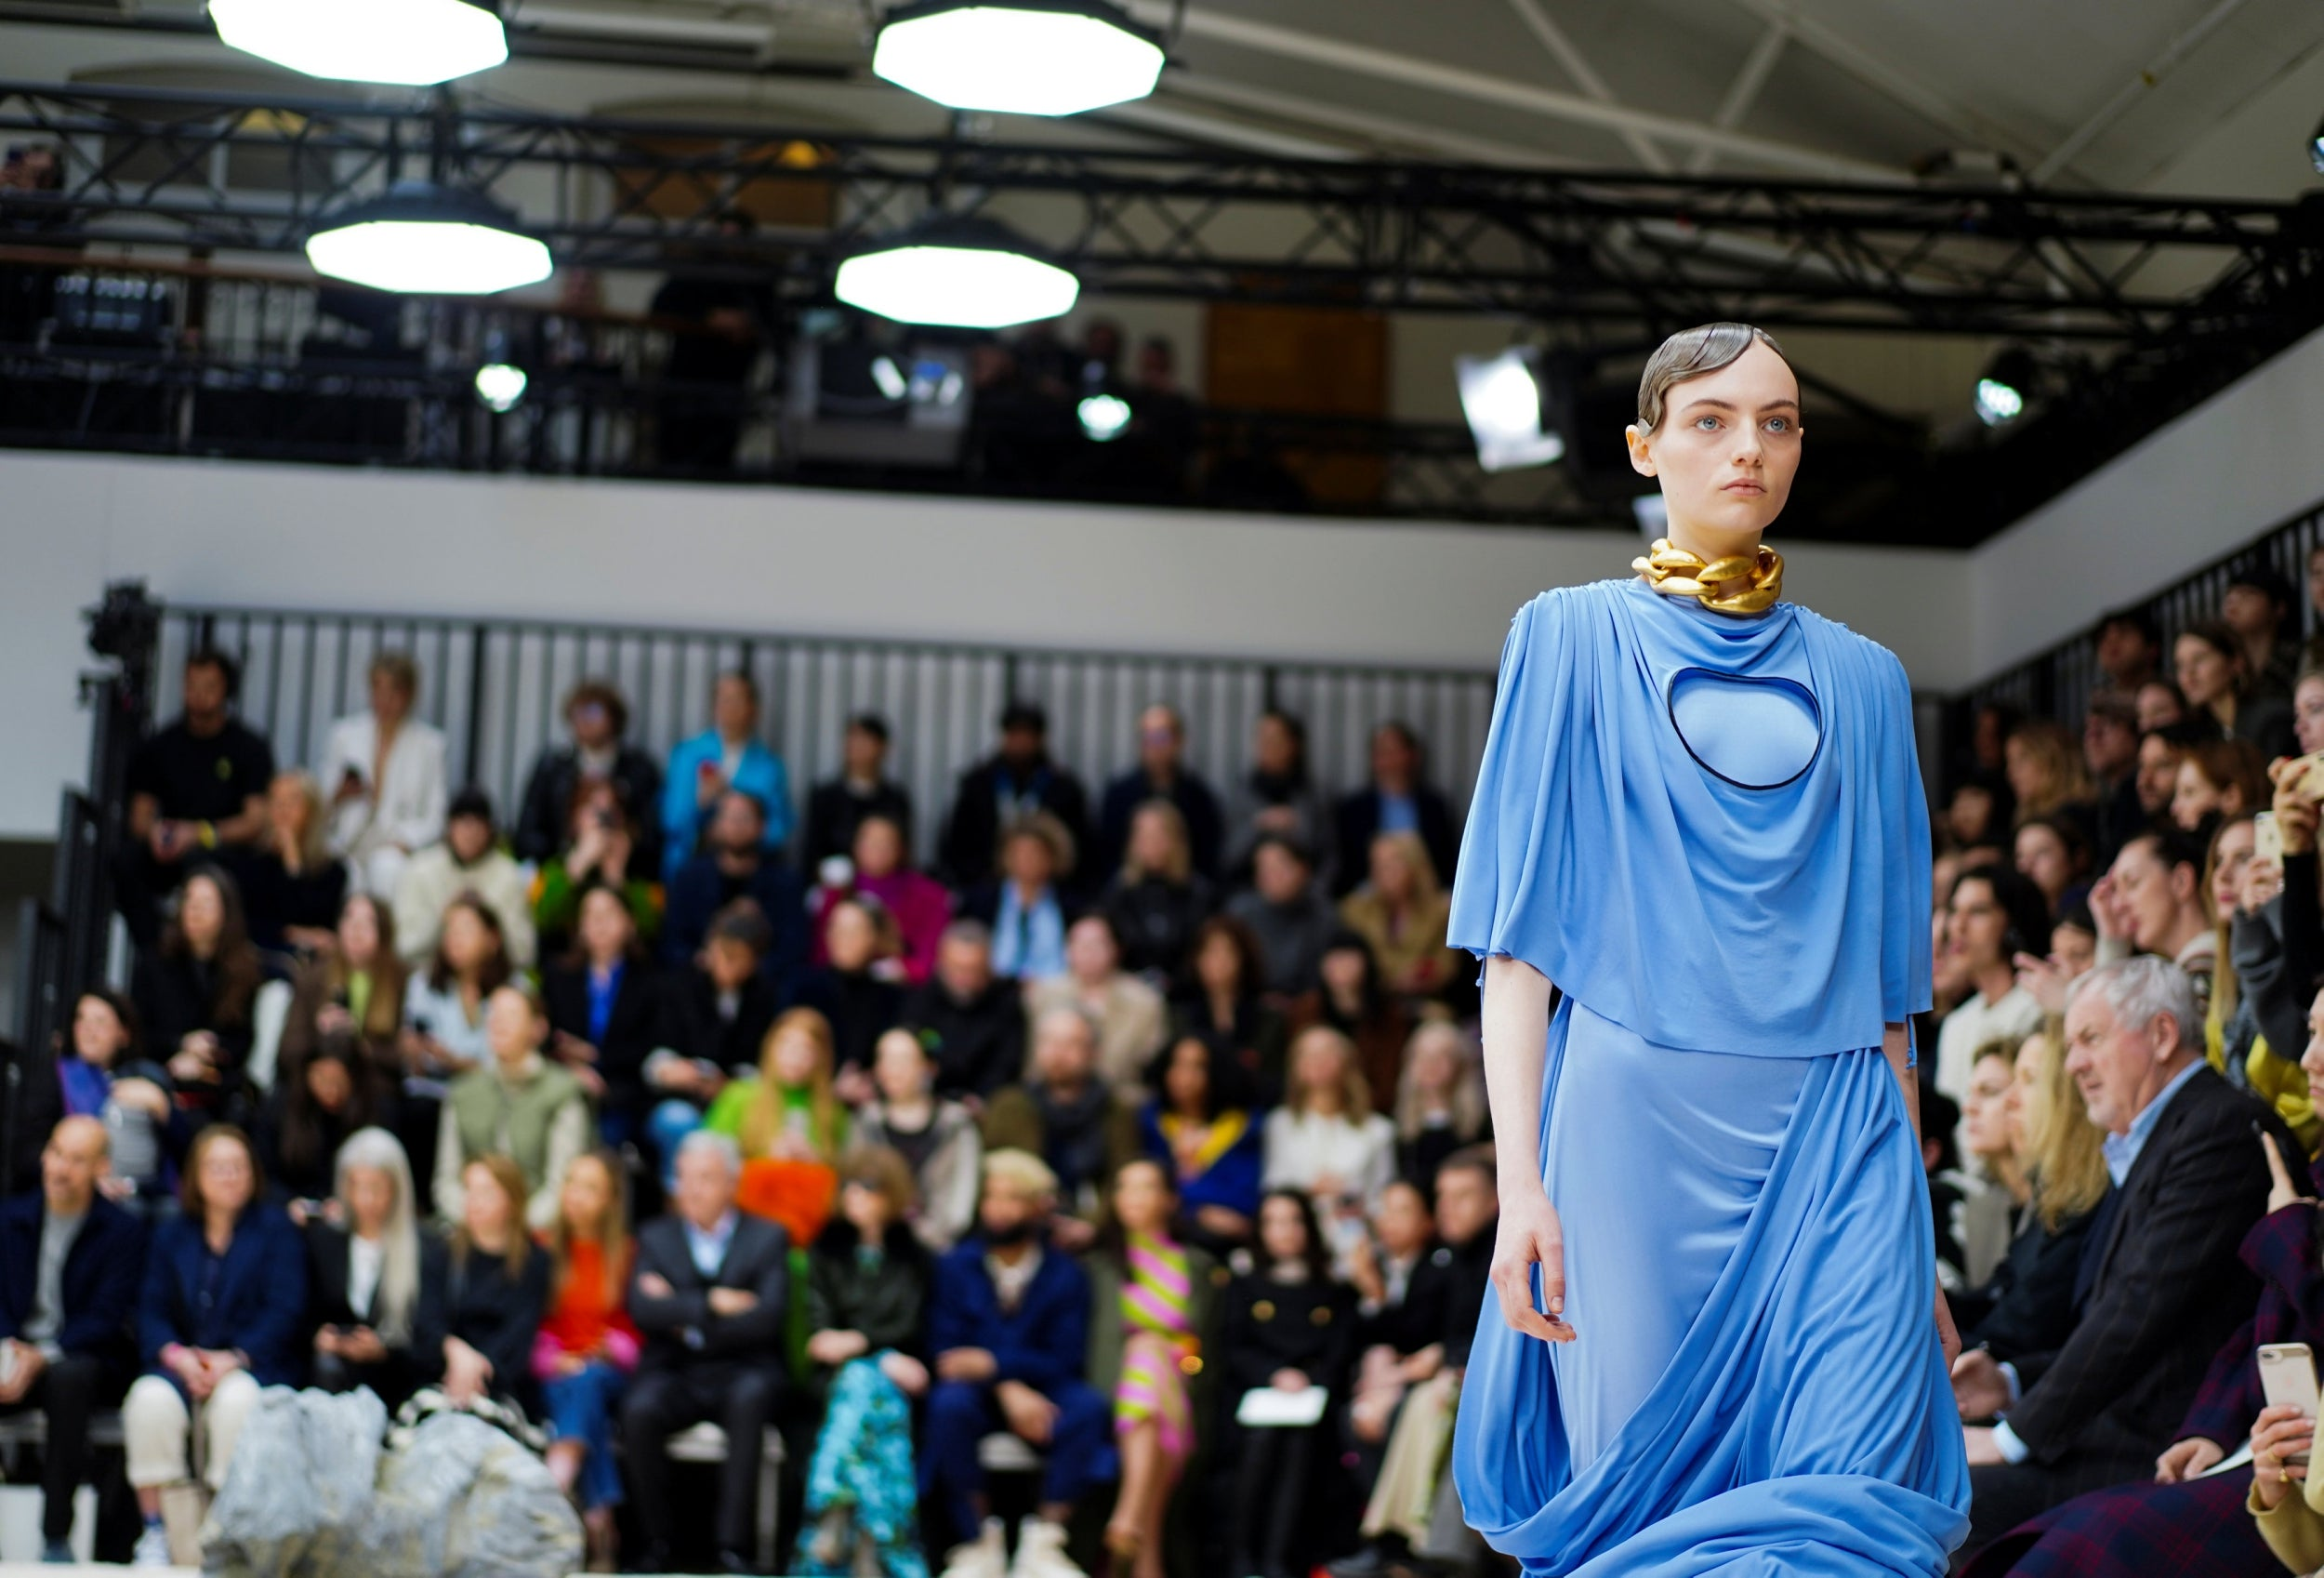 JW Anderson AW19 review: The London Fashion Week favourite didn't